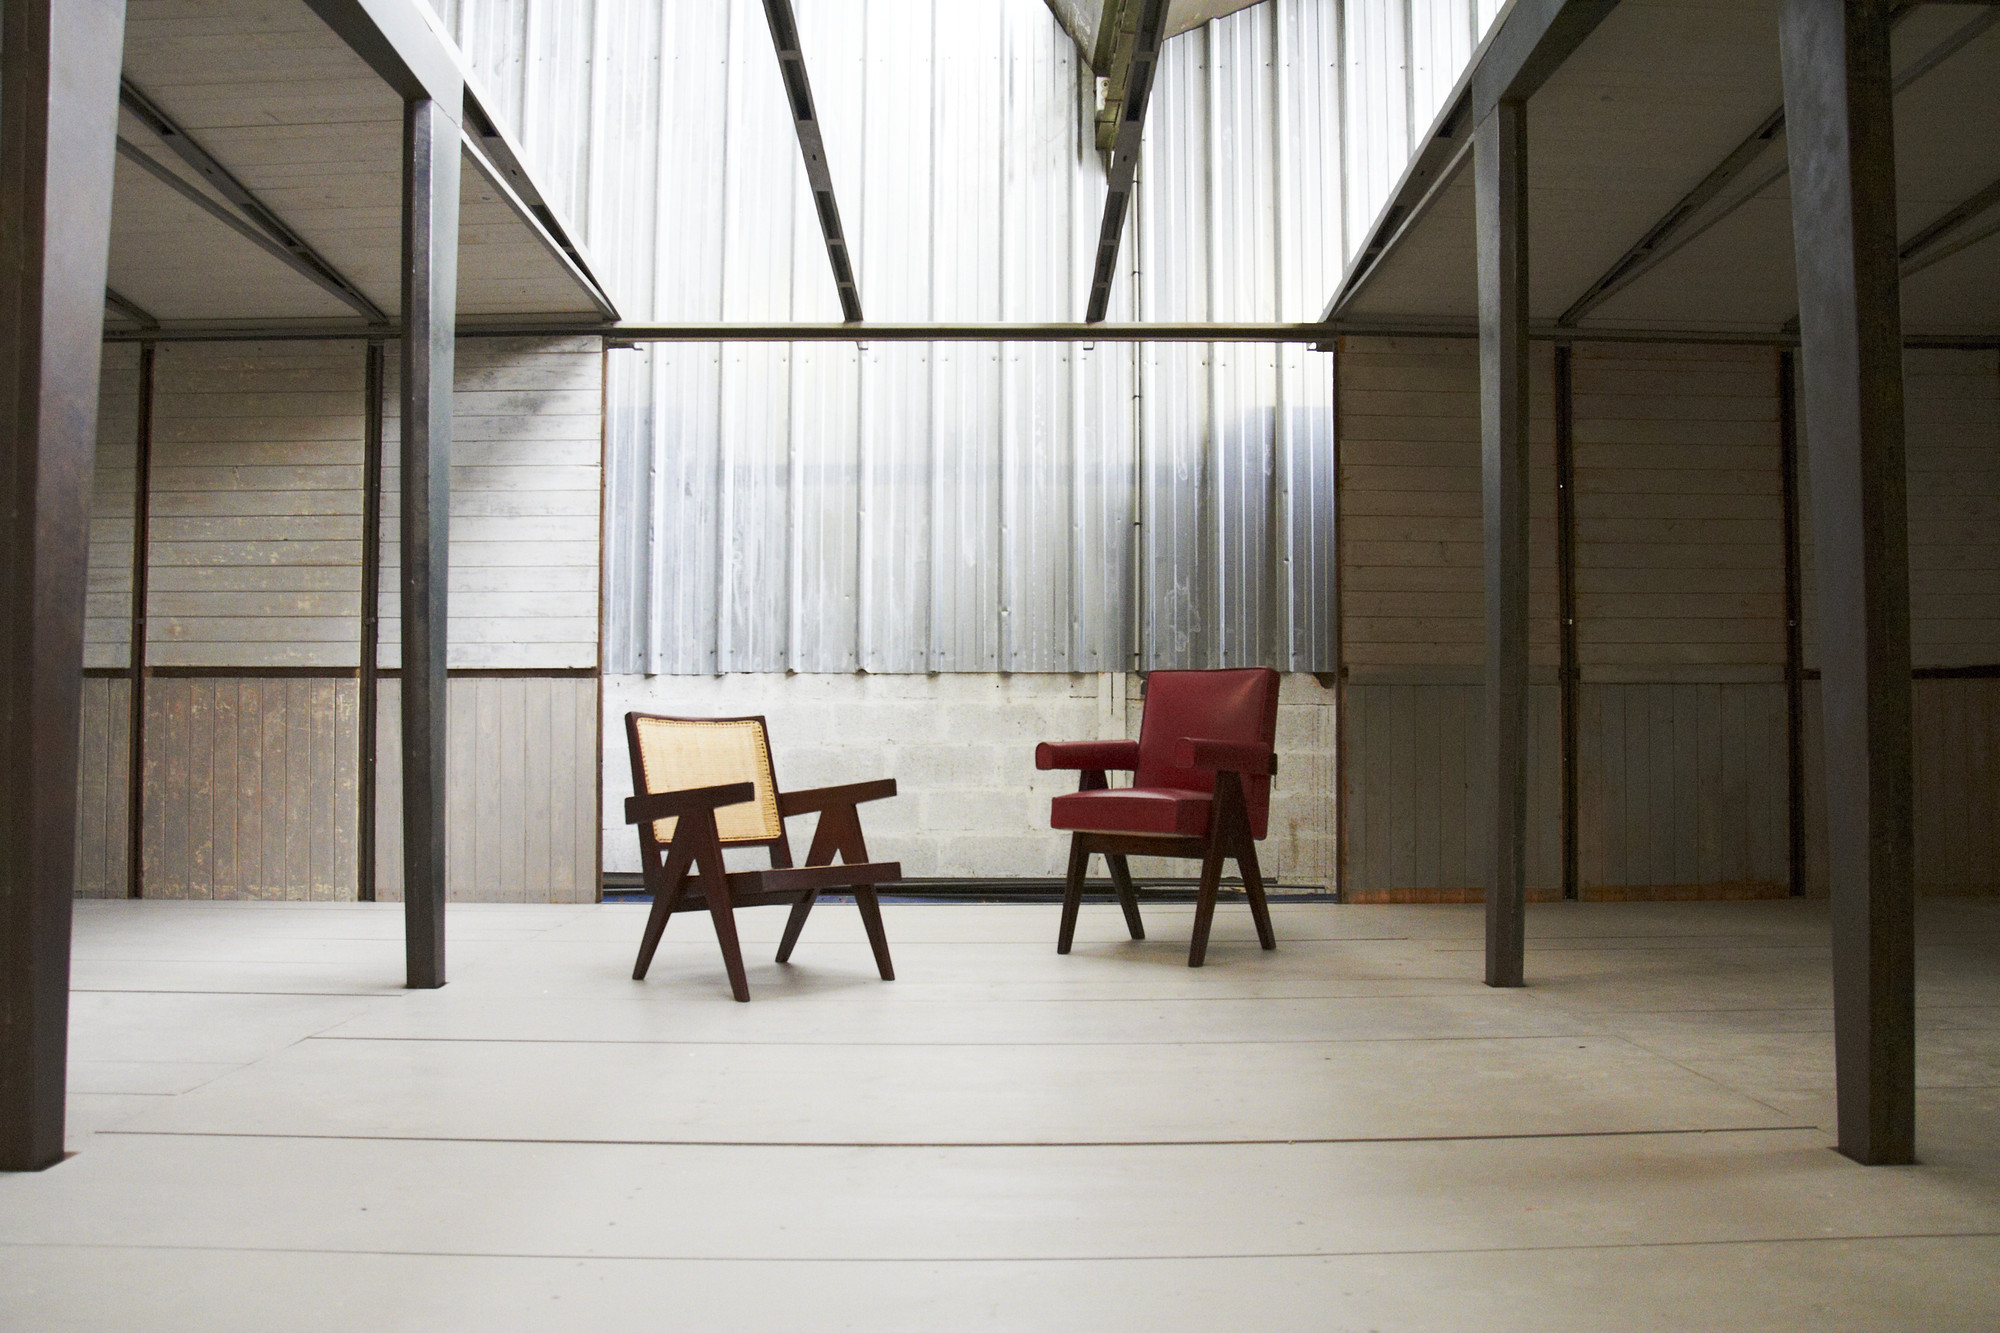 Jean Prouvé's Demountable House to be Exhibited at Design Shanghai 2015, Prouve House with Easy Armchair Chair and Committee Chair by Jeanneret. Image Courtesy of Forward